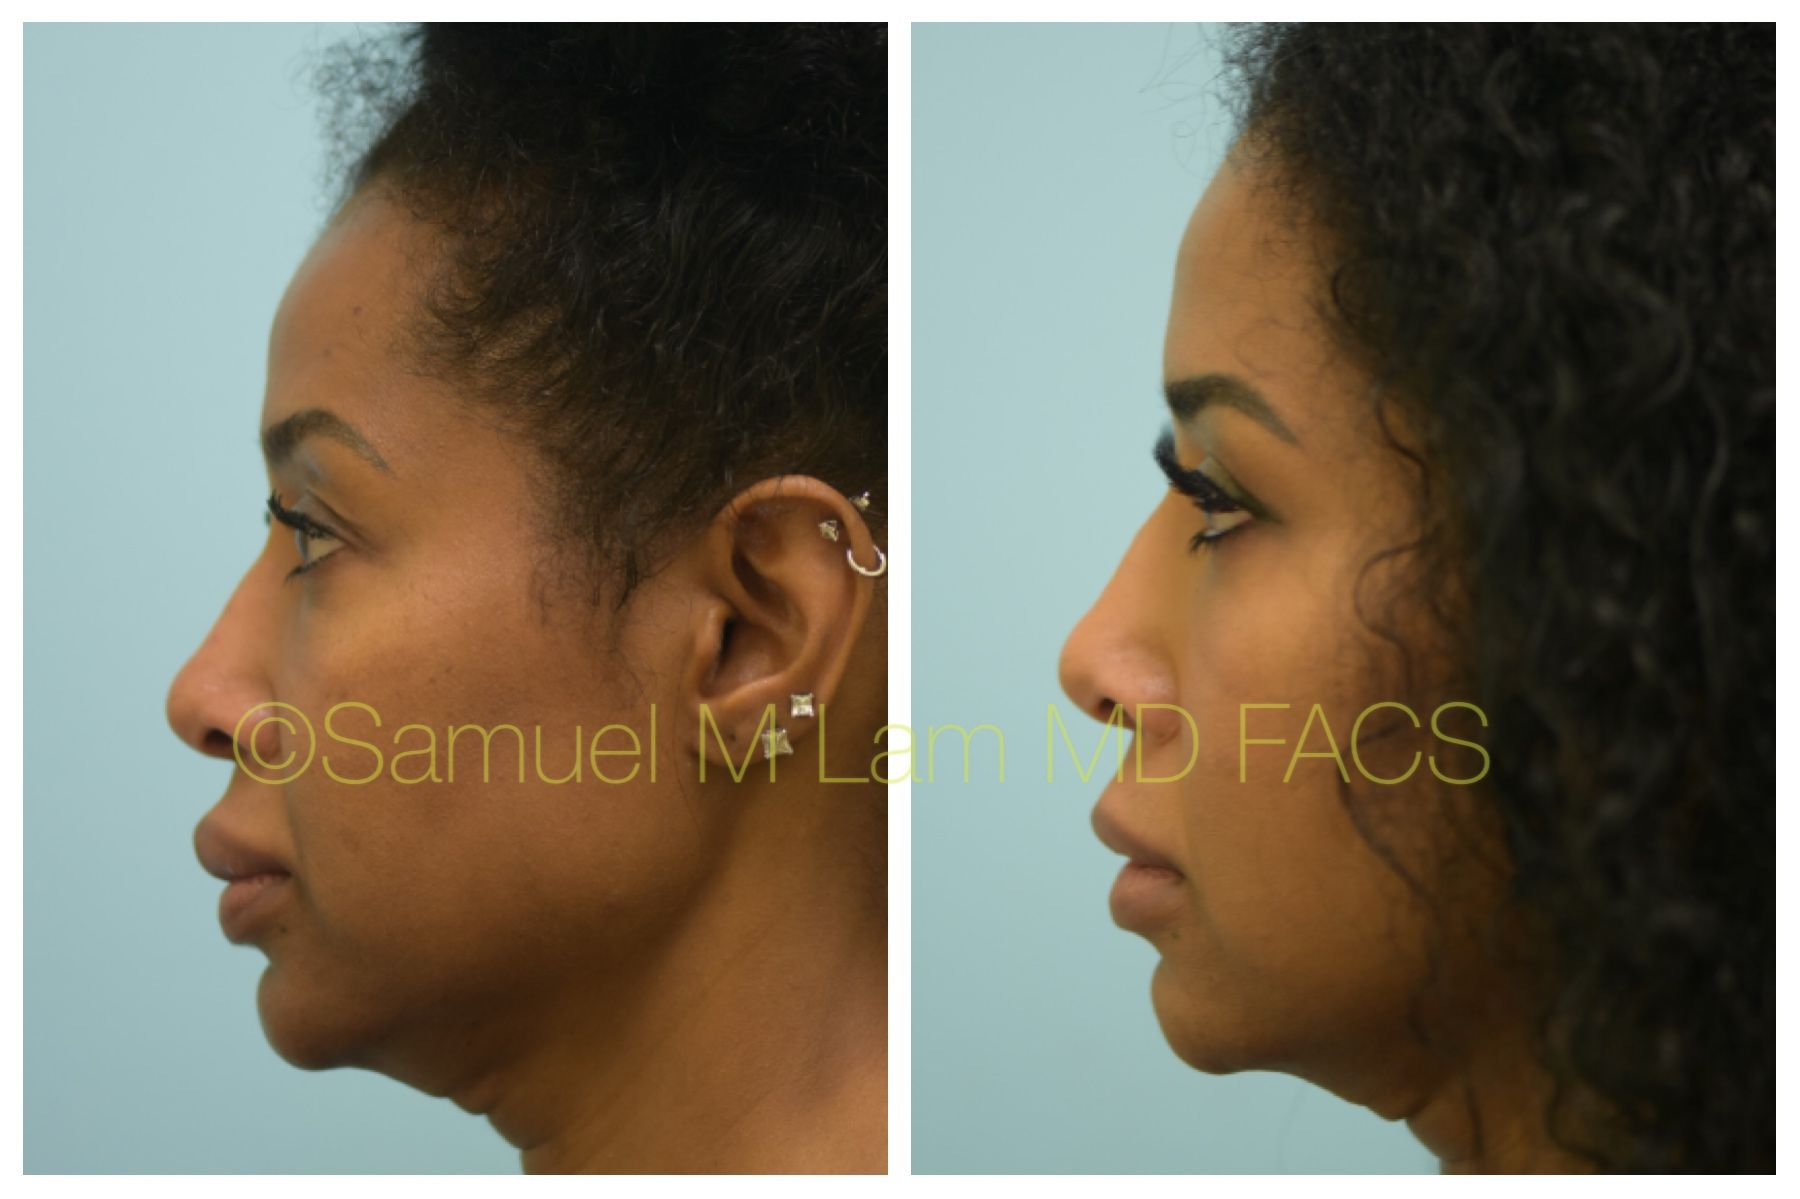 This African-American woman is shown before and 5 months after upper